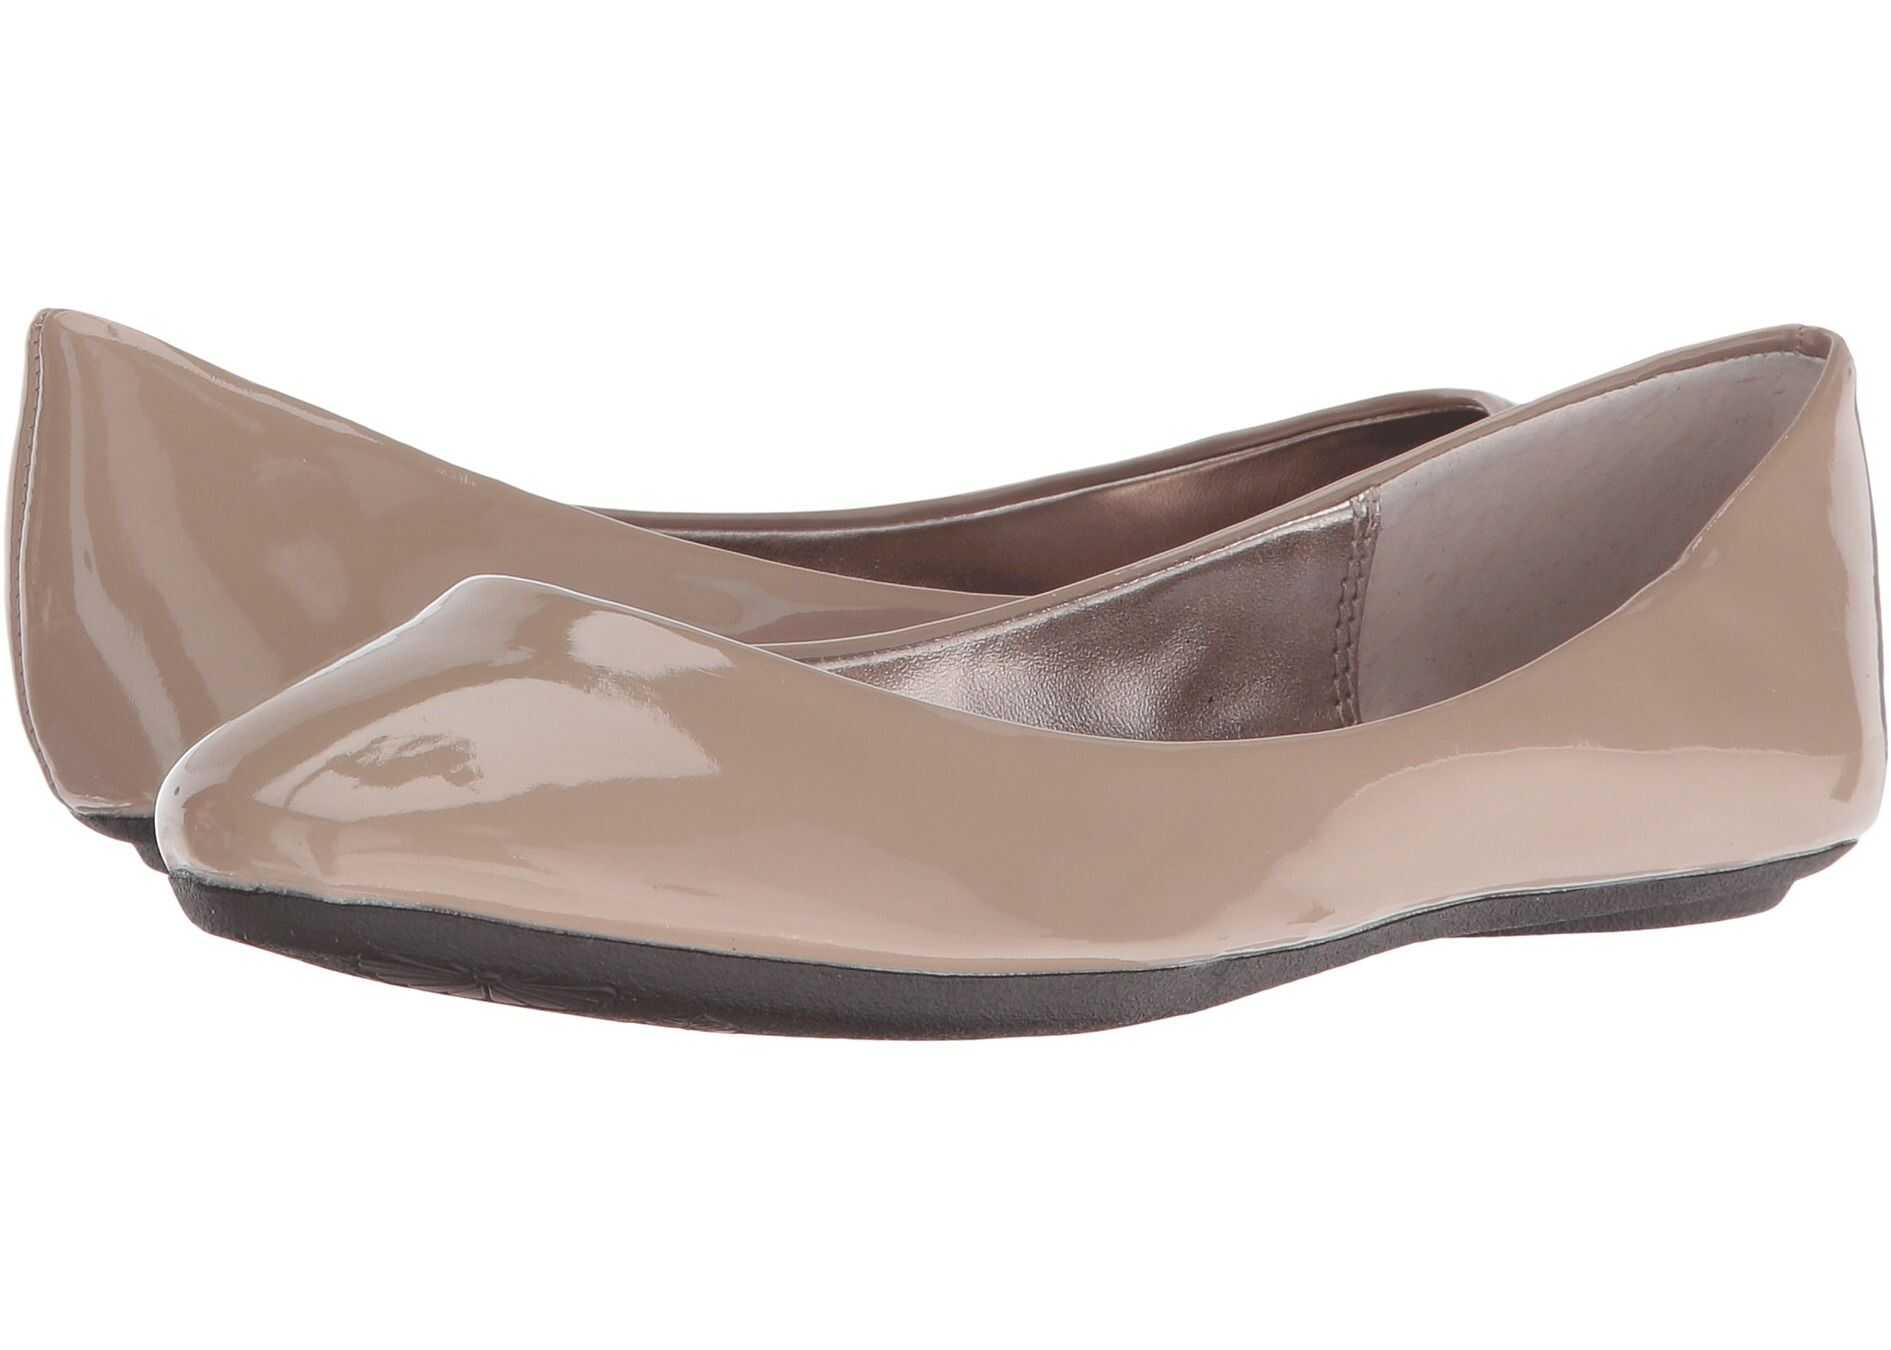 Steve Madden P-Heaven Taupe Patent